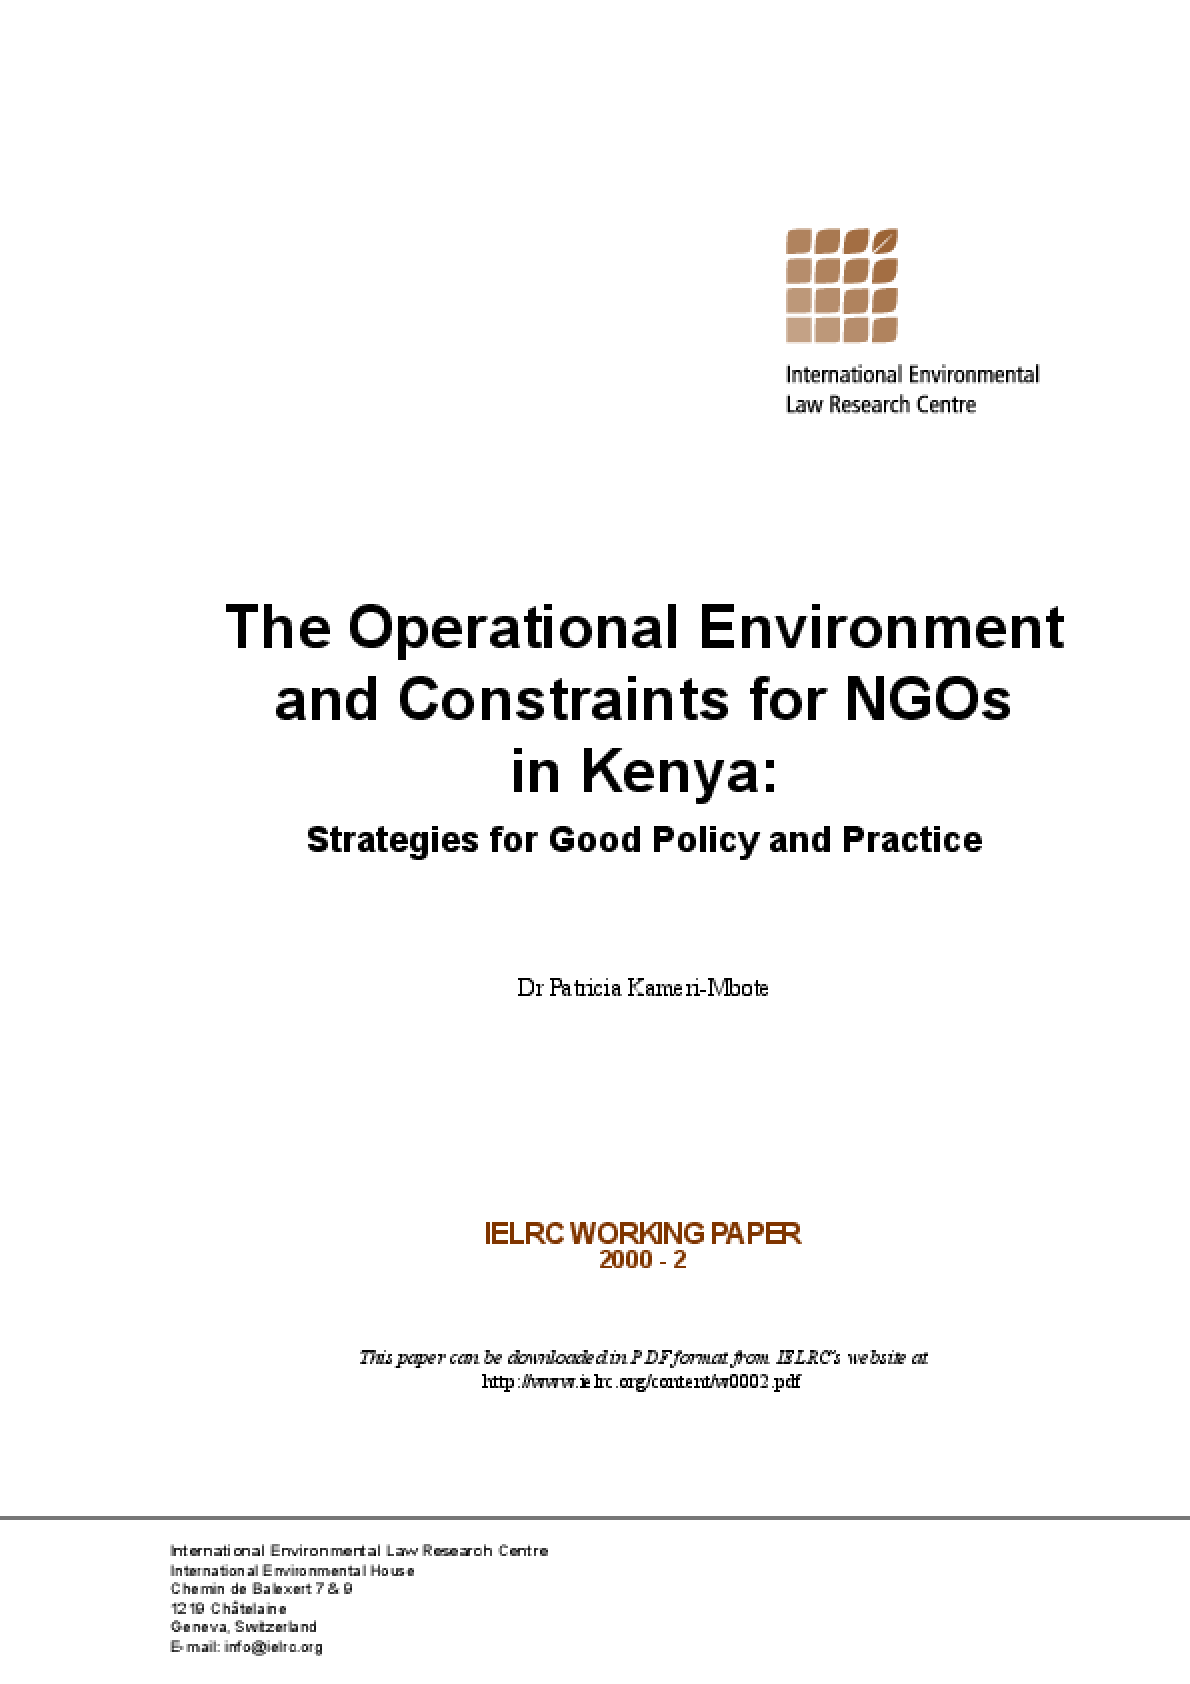 The Operational Environment and Constraints for NGOs in Kenya: Strategies for Good Policy and Practice